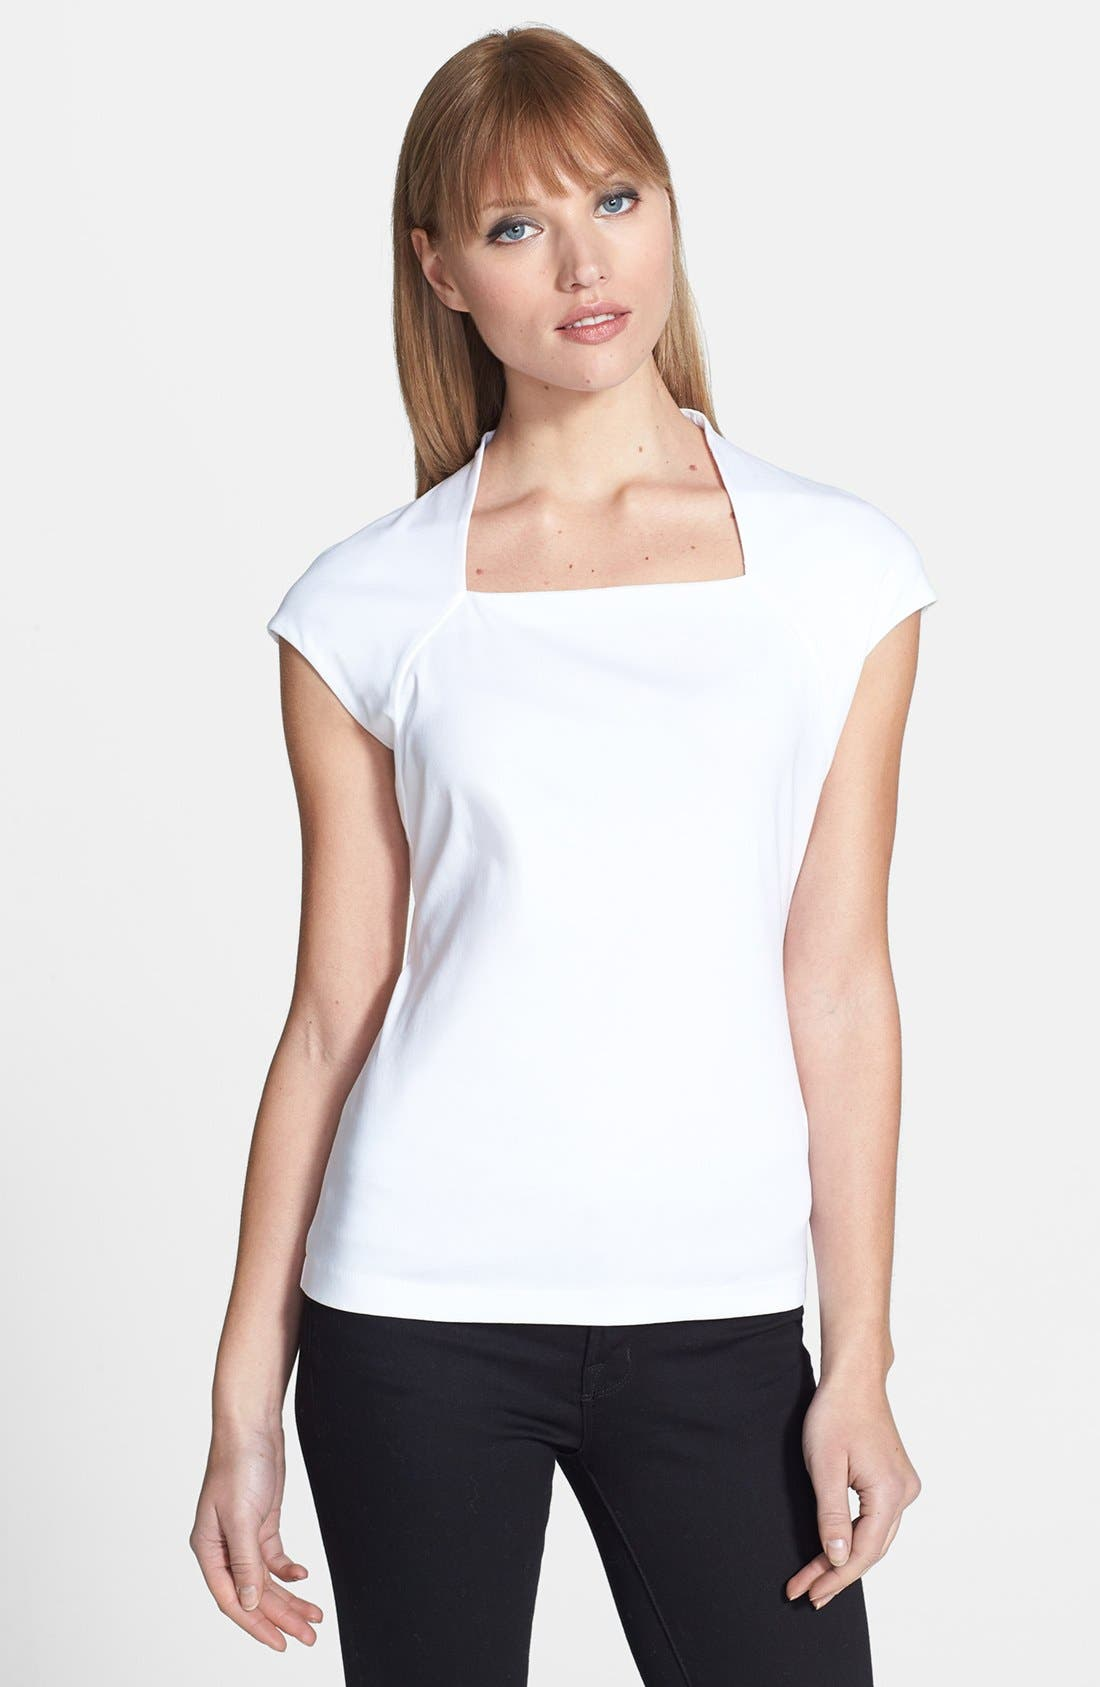 Alternate Image 1 Selected - Lafayette 148 New York Portrait Neck Cotton Rib Top (Petite)